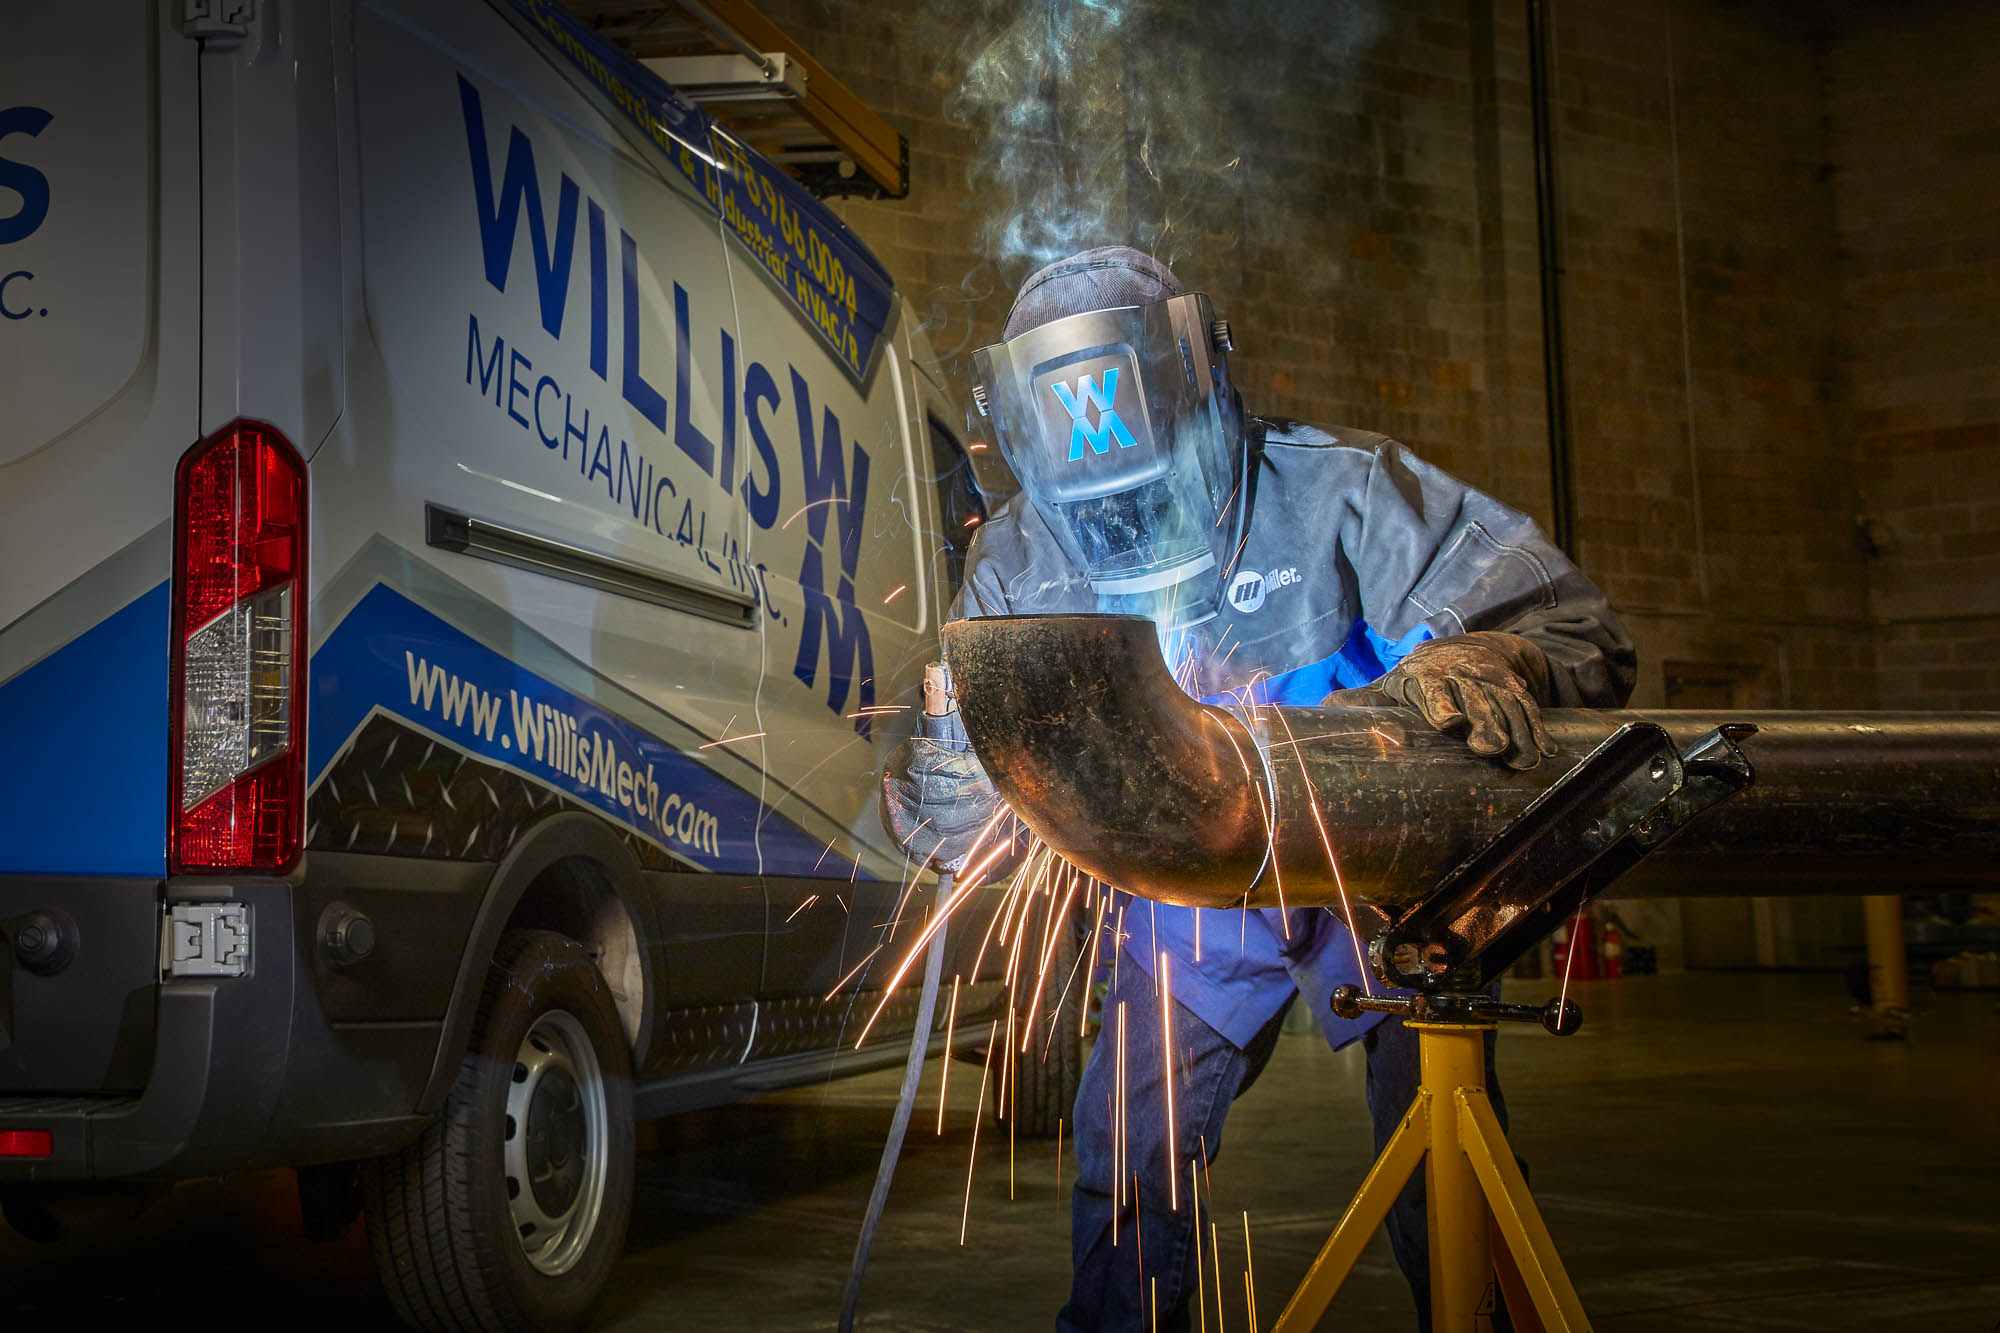 Photography of welder with sparks in Atlanta warehouse